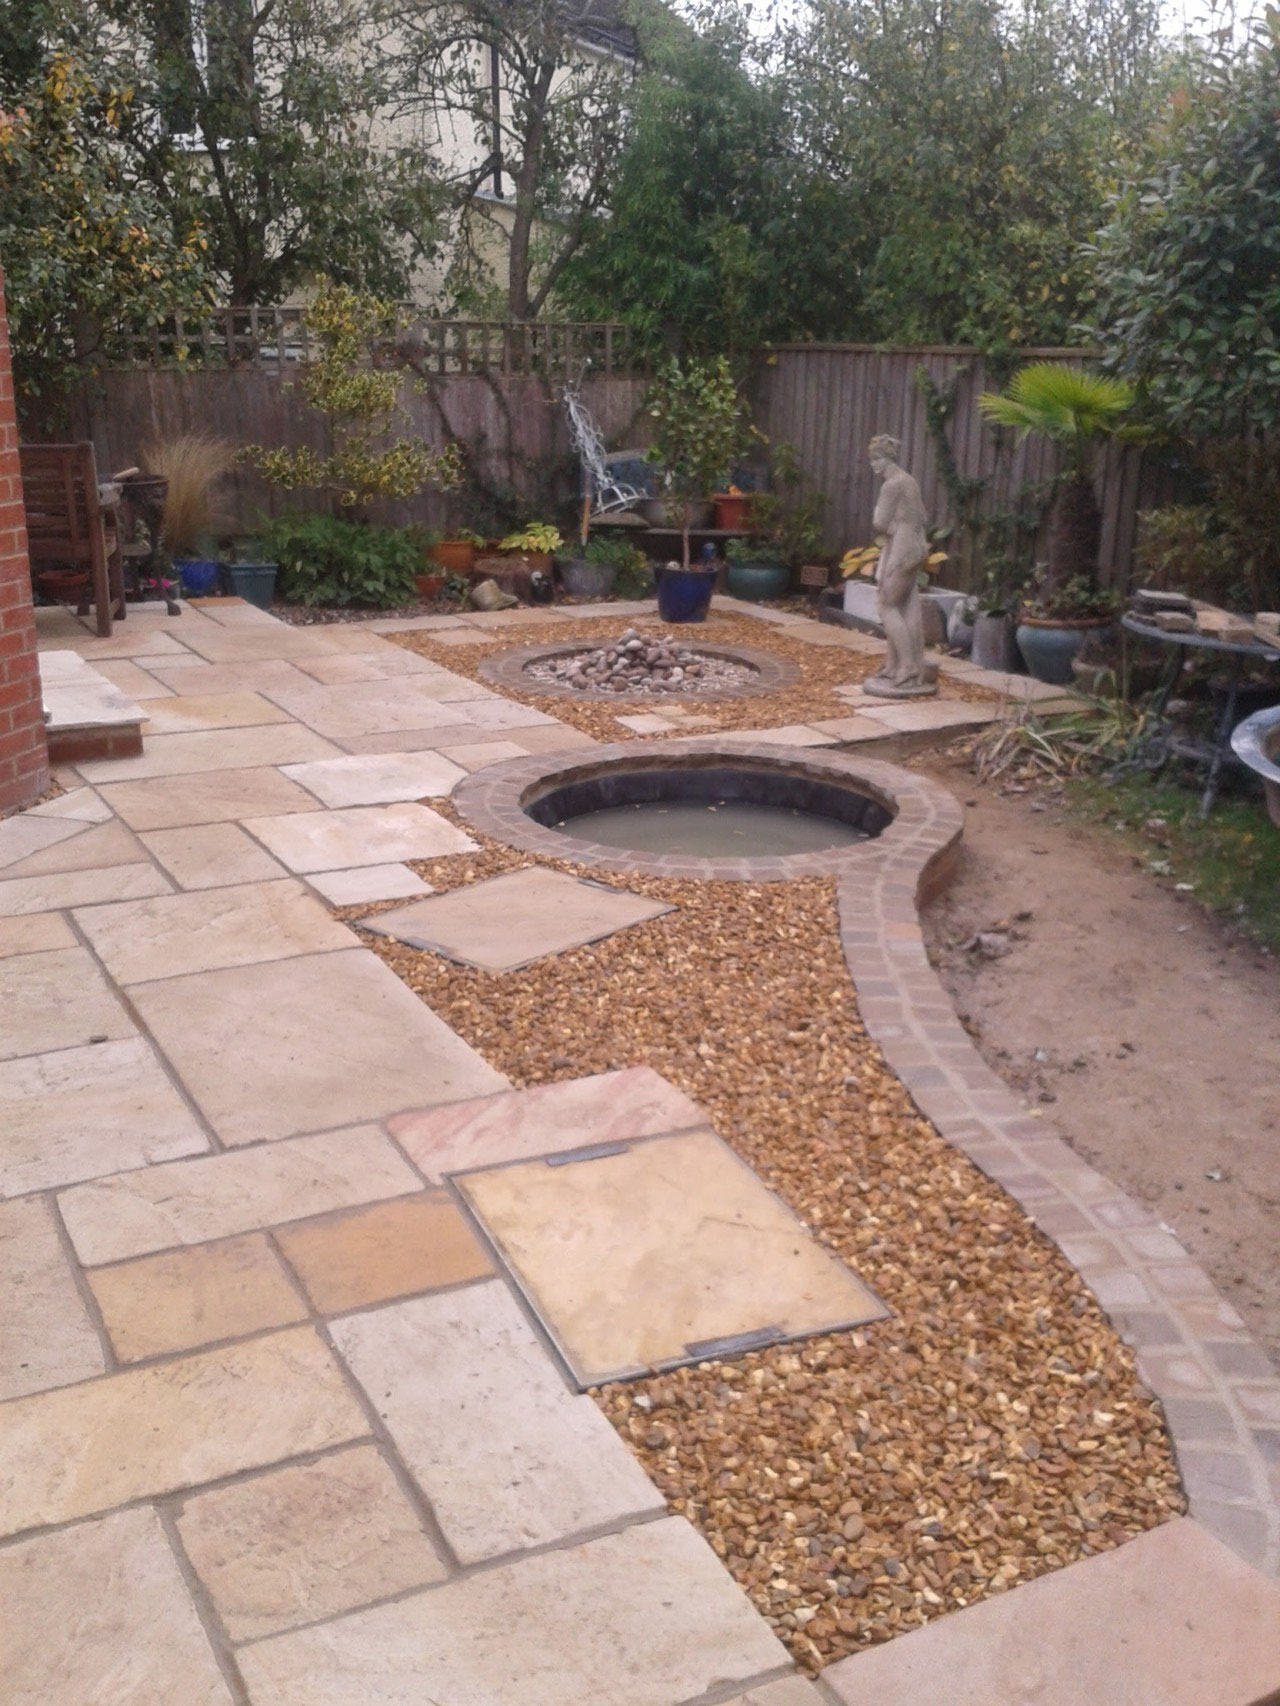 Indian stone slabs with setts  around the edge a pond and gravel